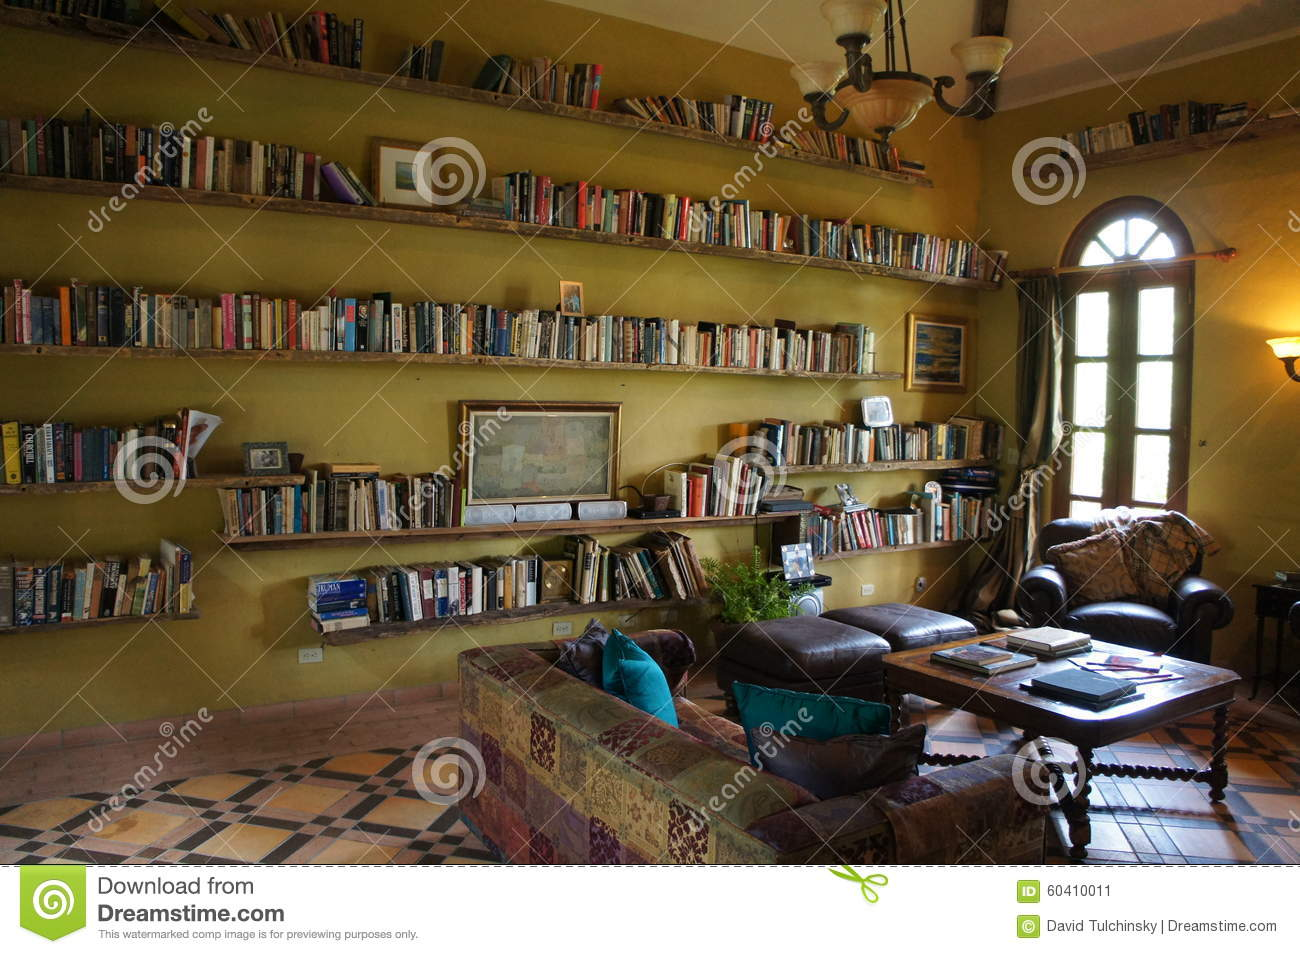 Library at la casa de lourdes stock photo image 60410011 - Casa de lourdes ...